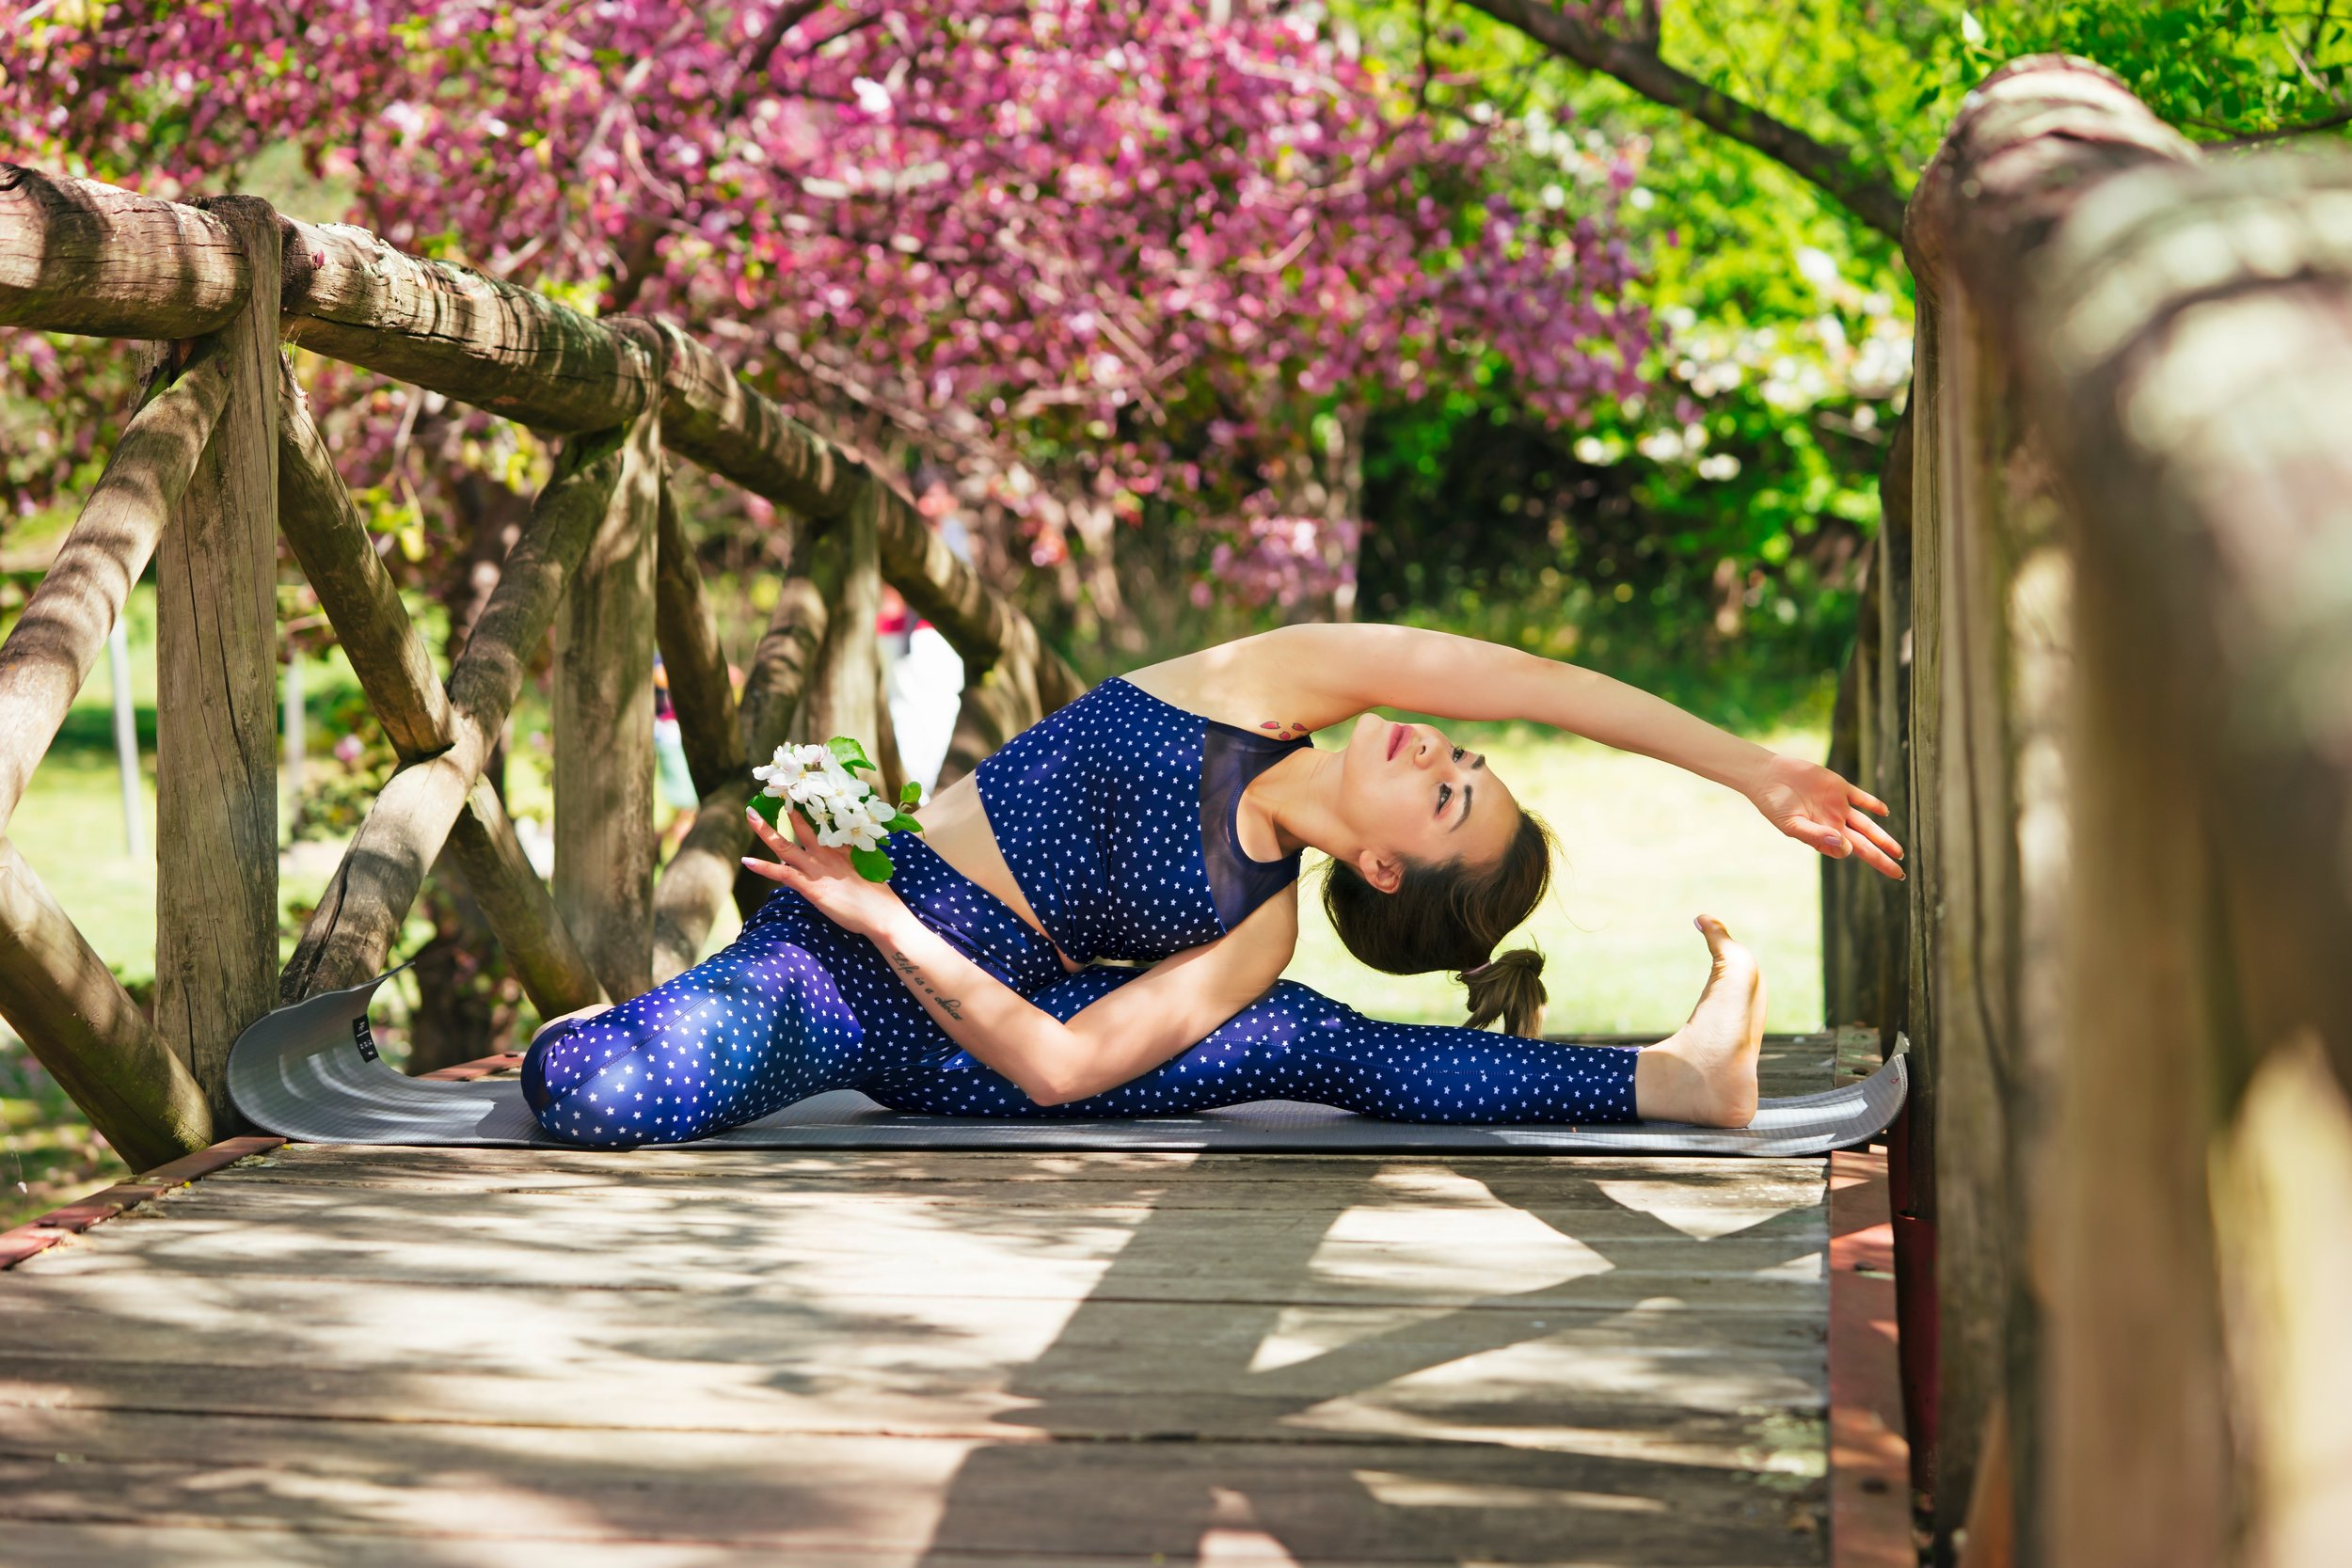 What My Yoga Instructor Taught Me About Writing // unreadstoriesclub.com